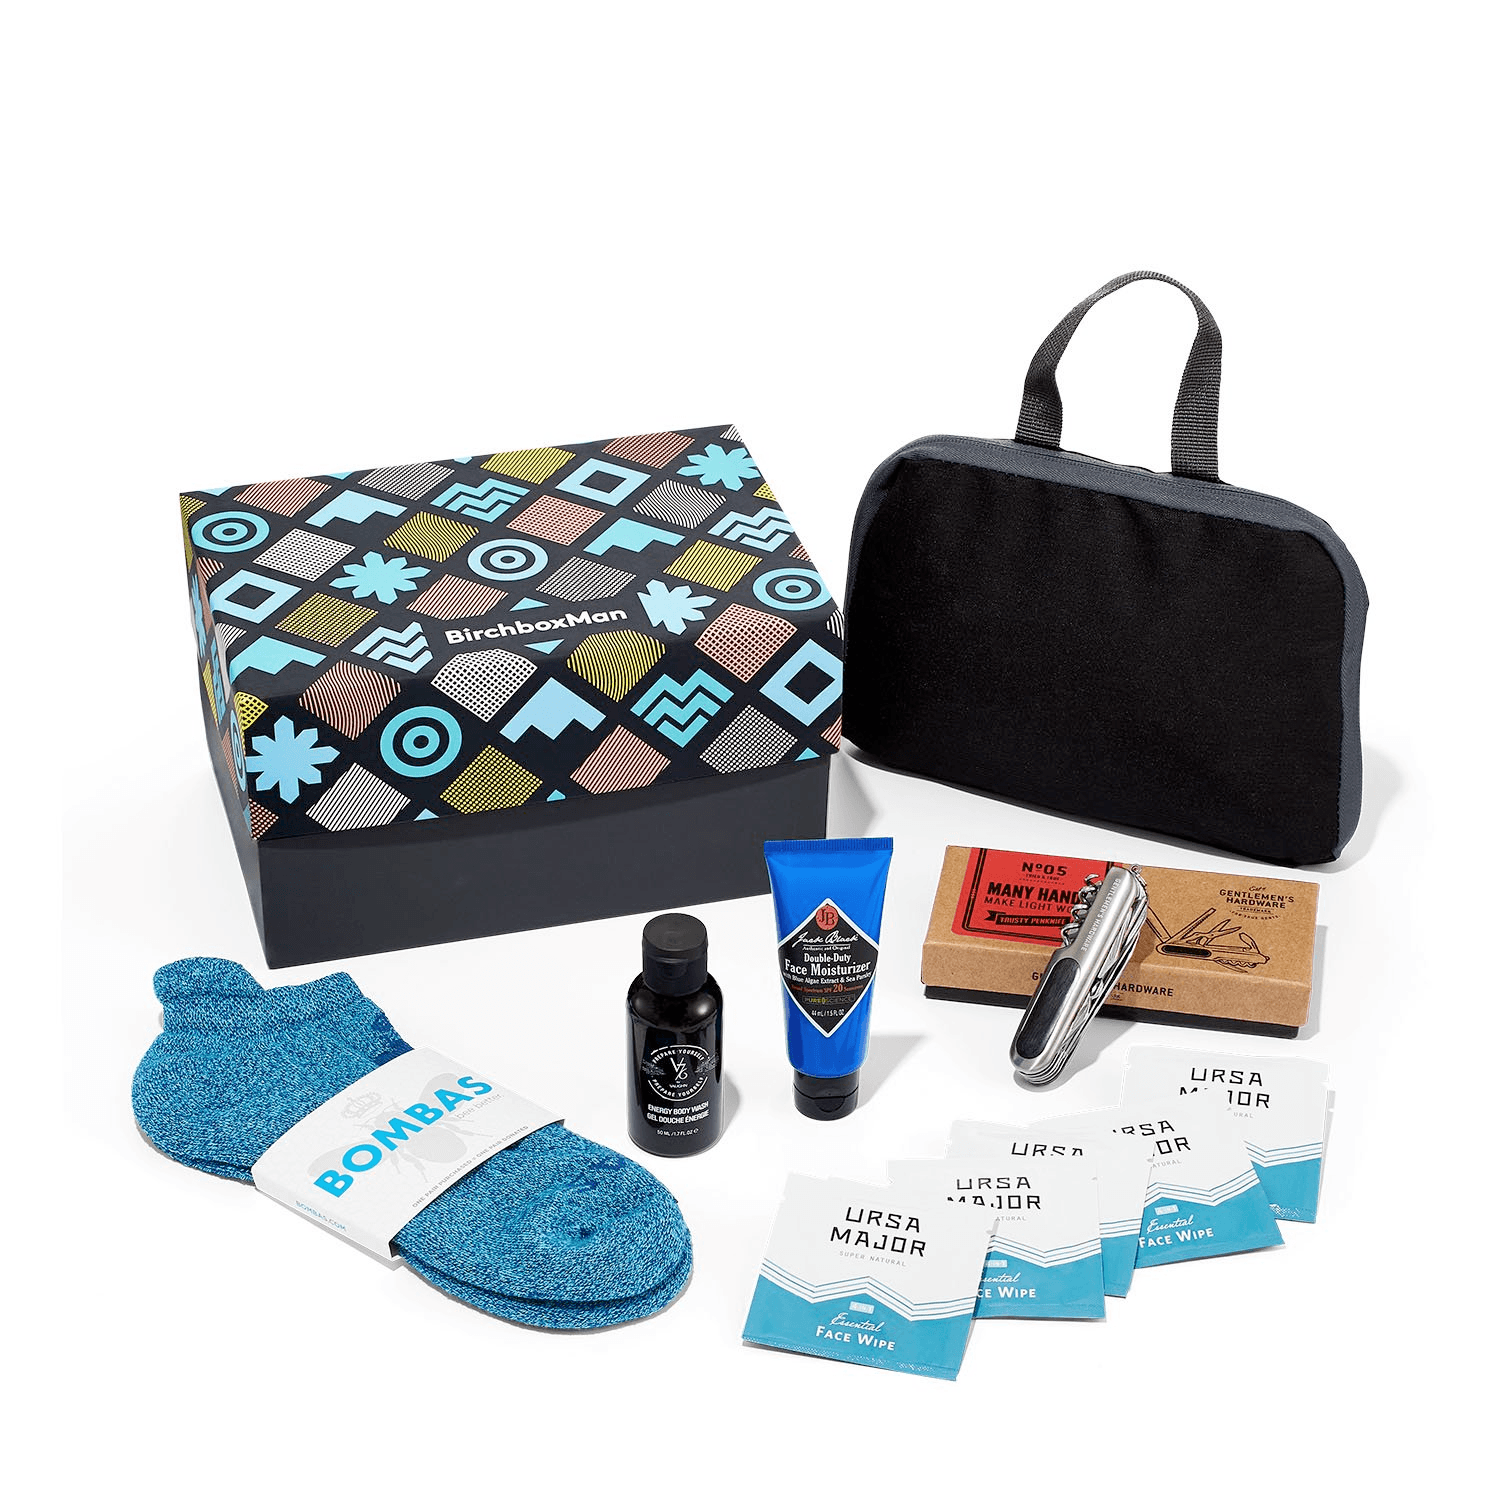 Two New Birchbox Man Limited Edition Boxes Now Available + Bonus Gift Coupons!